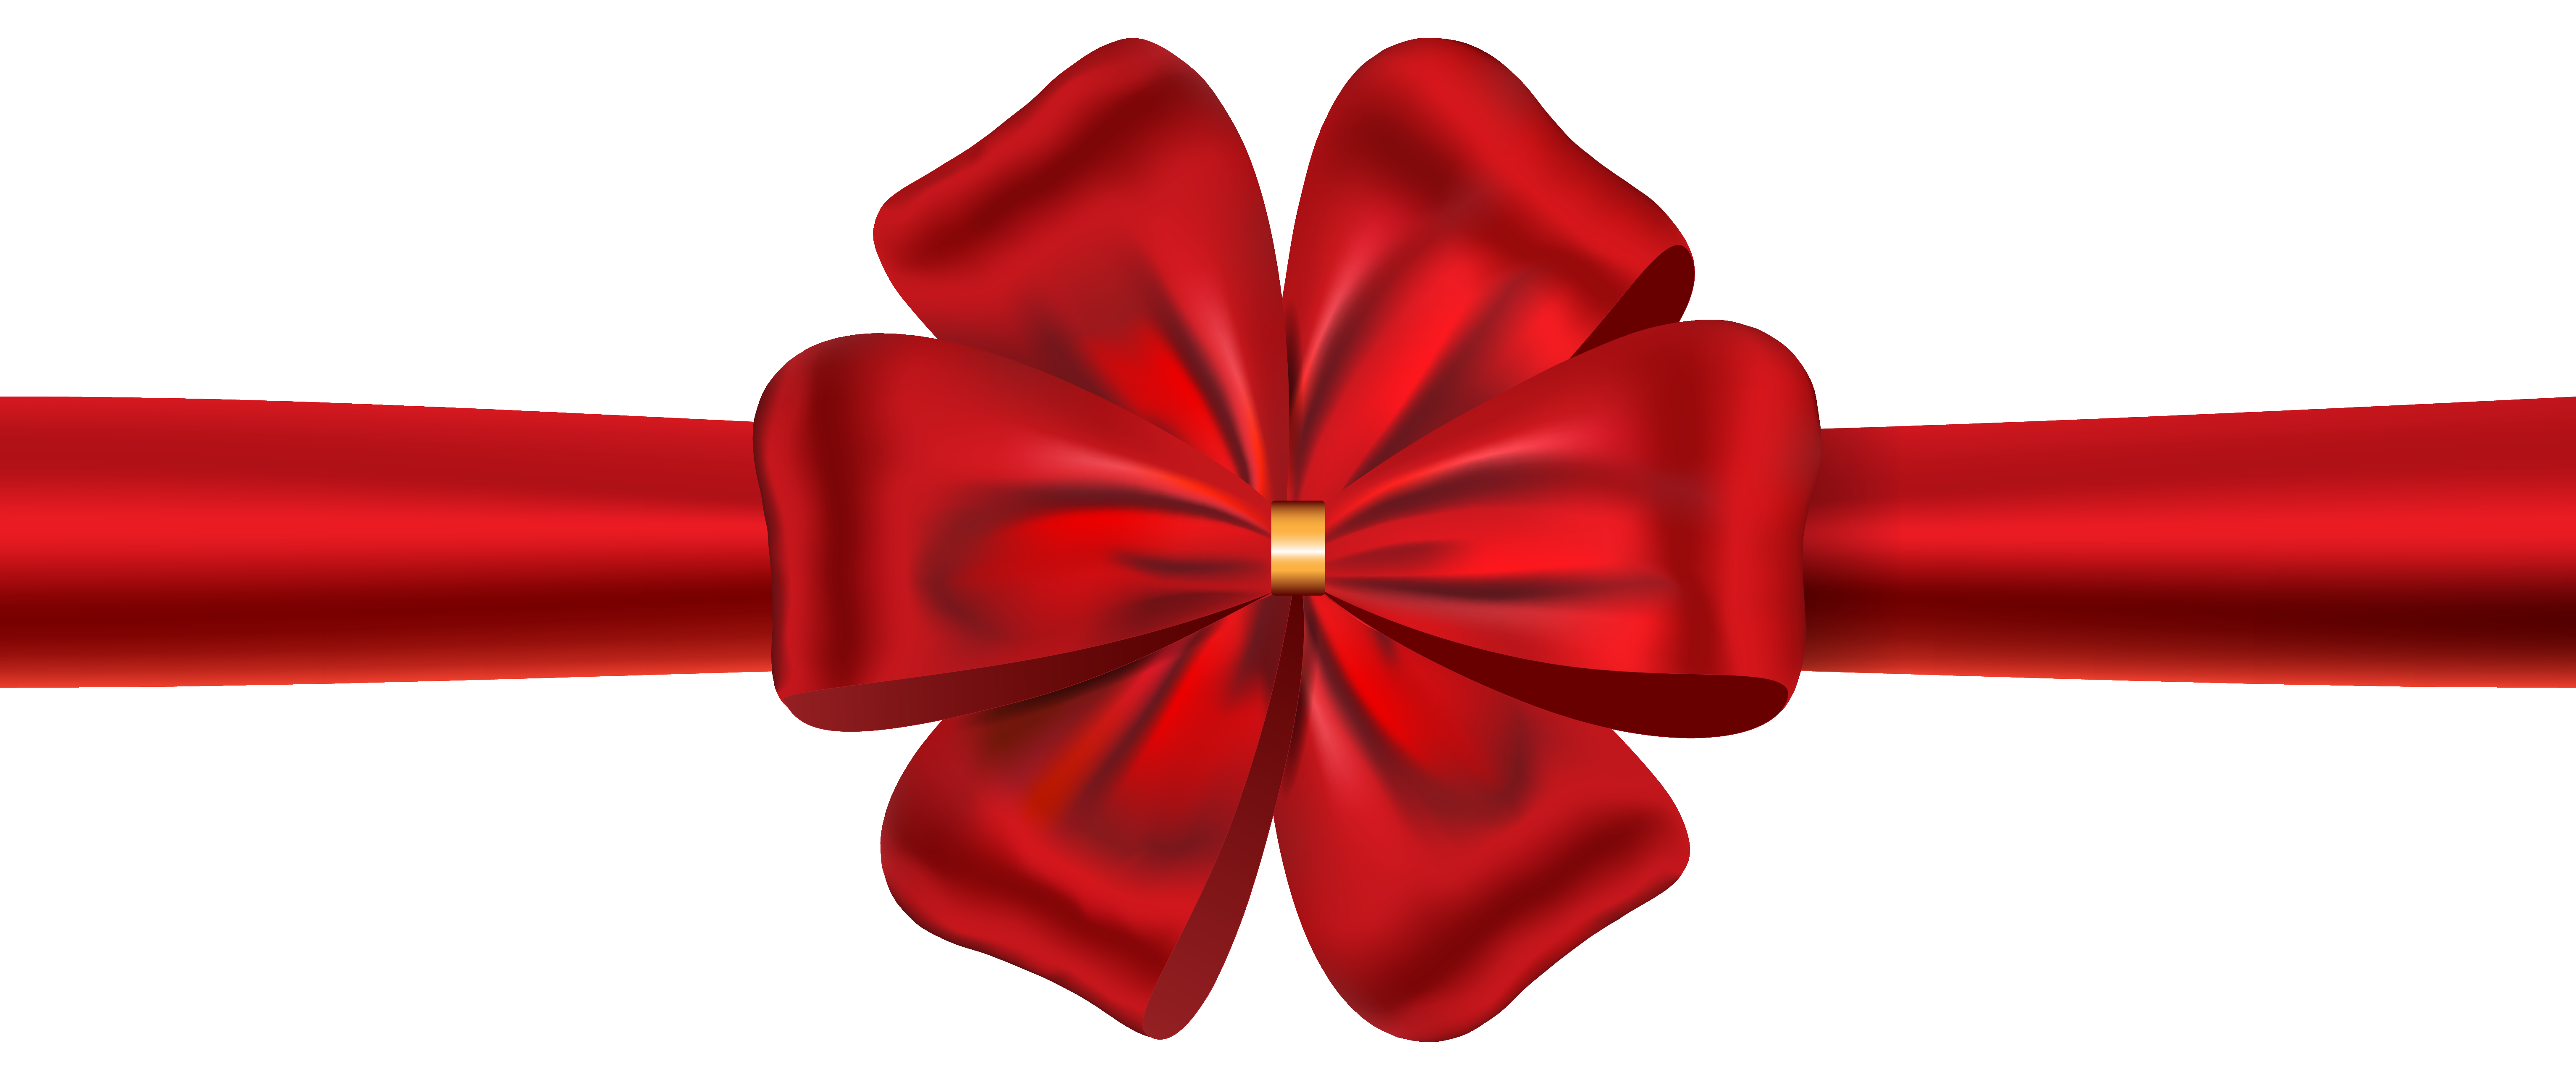 Red Ribbon with Bow PNG Image.